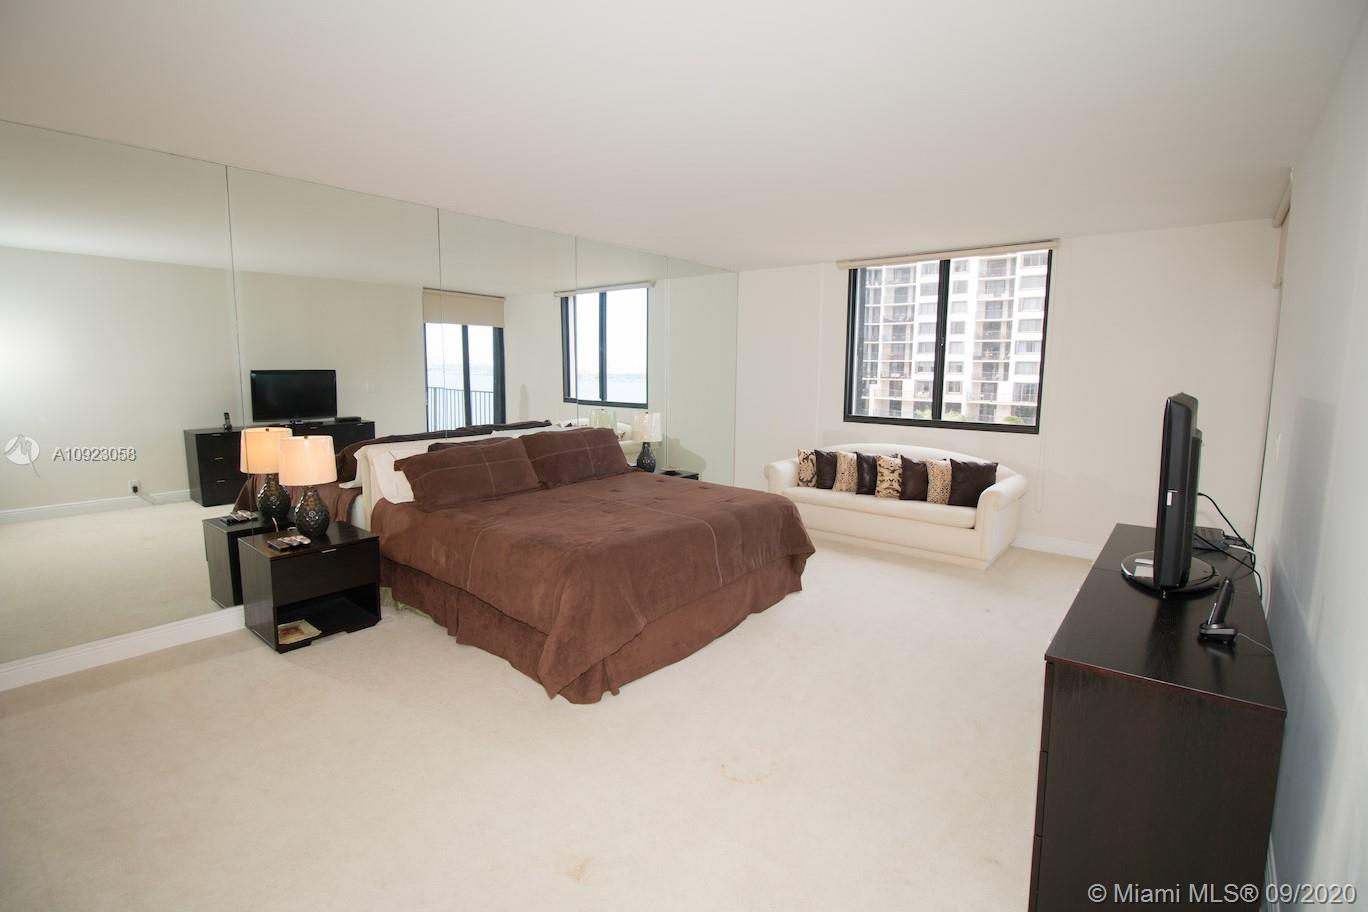 Brickell Key One #A806 - 520 Brickell Key Dr #A806, Miami, FL 33131